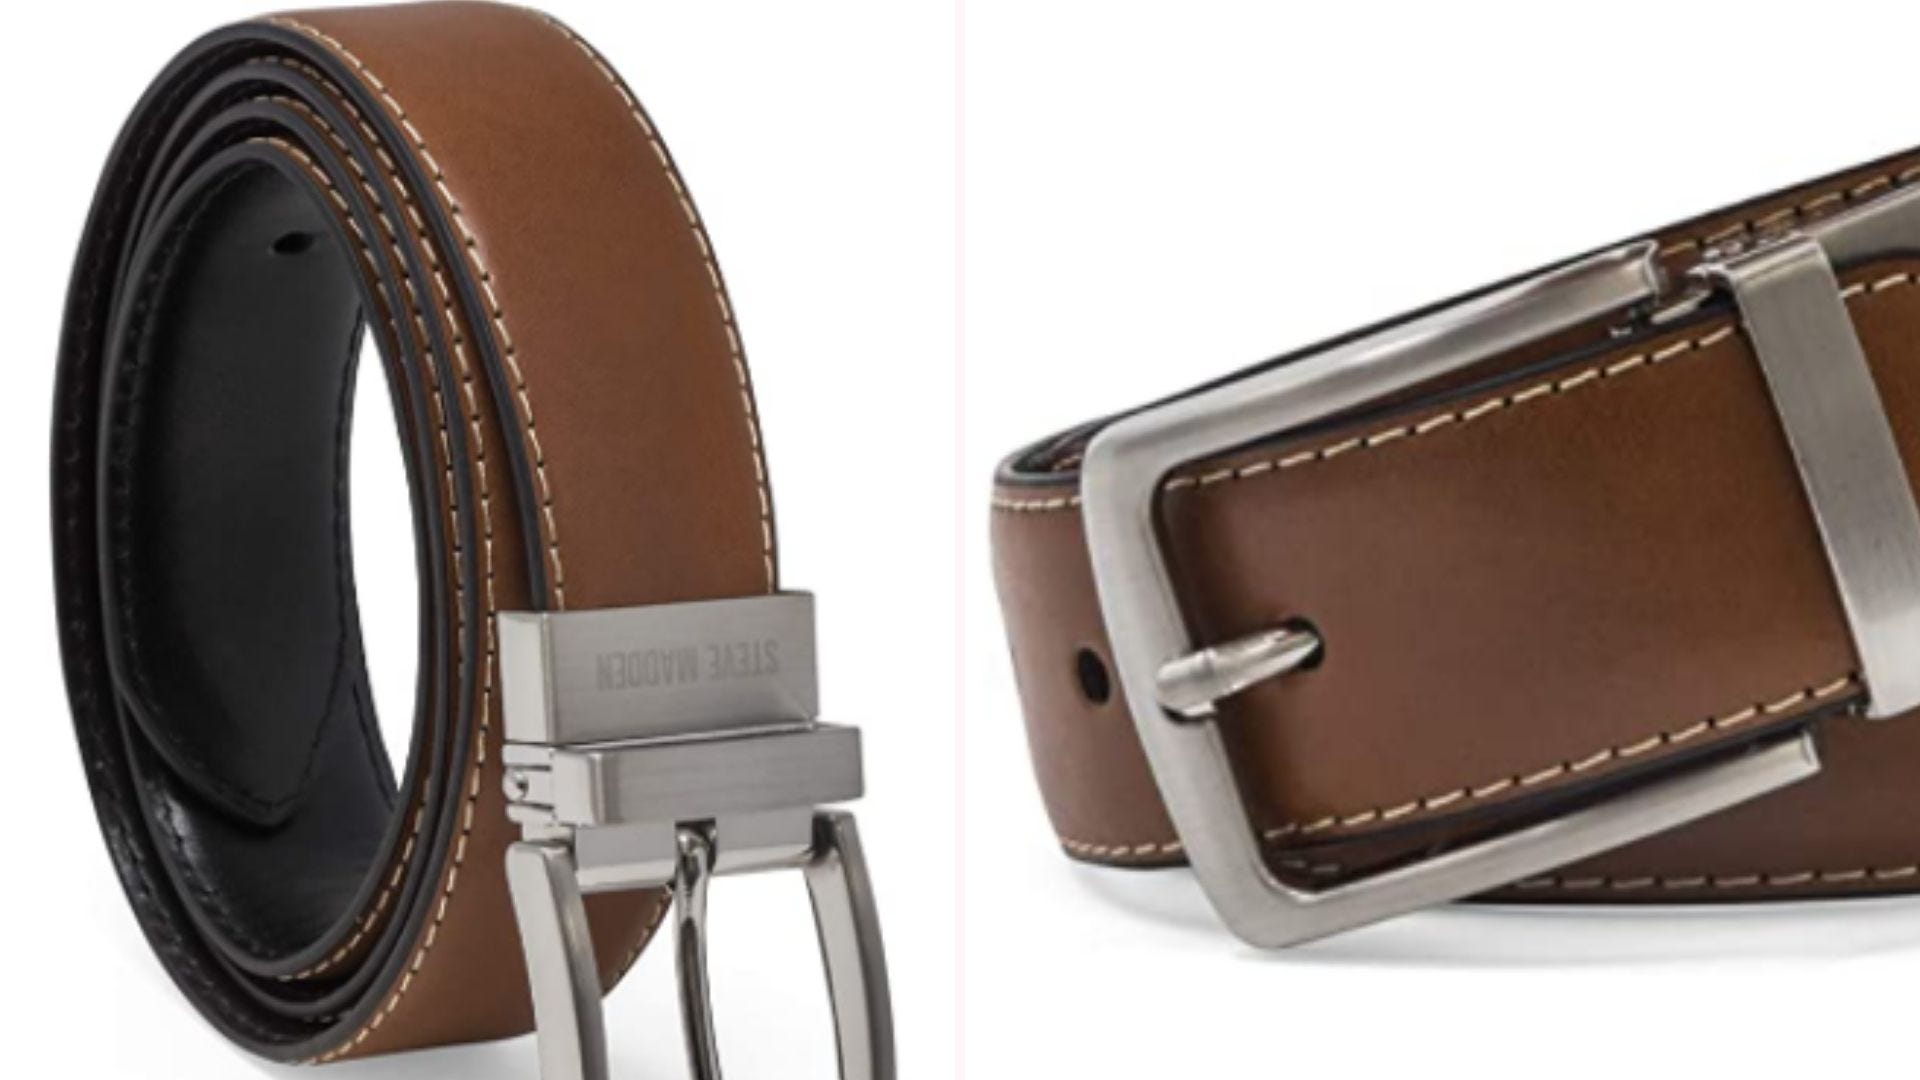 On the left, a cognac brown poly-leather belt that is positioned to reveal its reversible, black underside. On the right, a closeup view of the belt's gunmetal buckle and its feather edge stitch work.